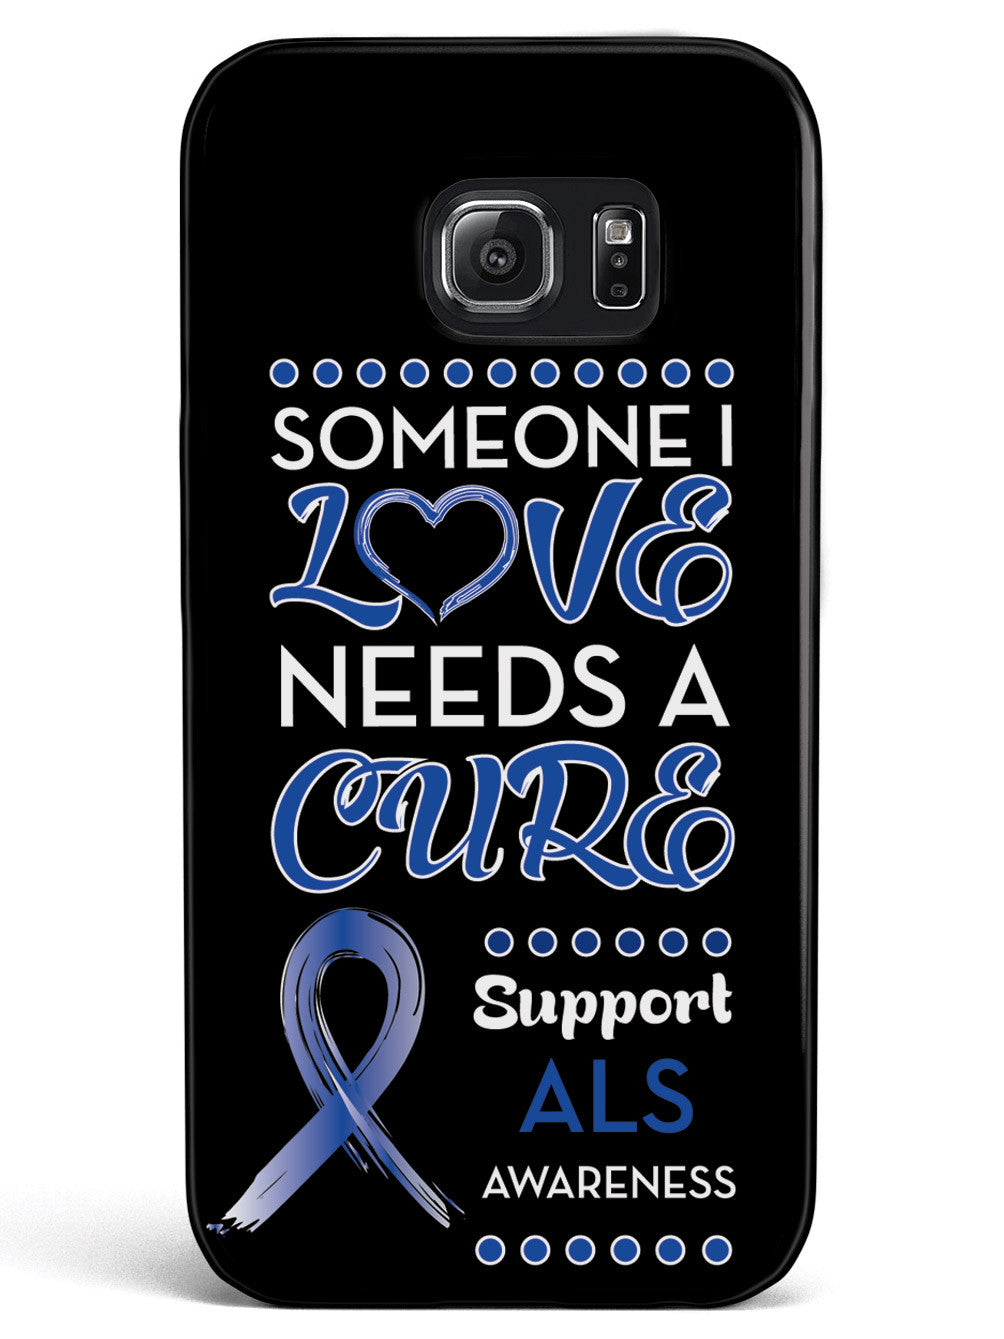 ALS Awareness Support Case